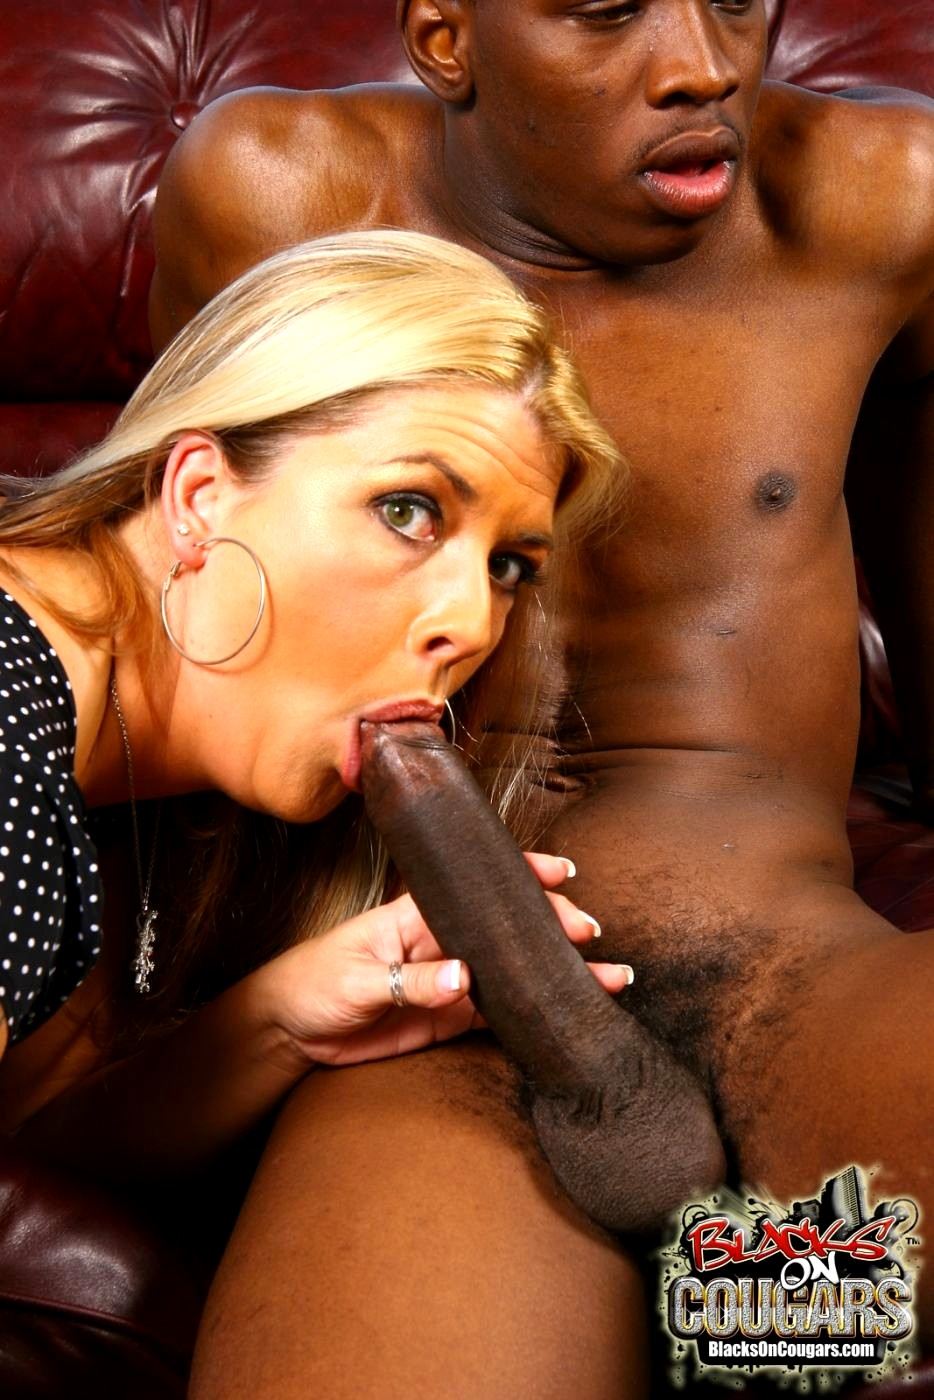 Pornstar Double Penetration Hd